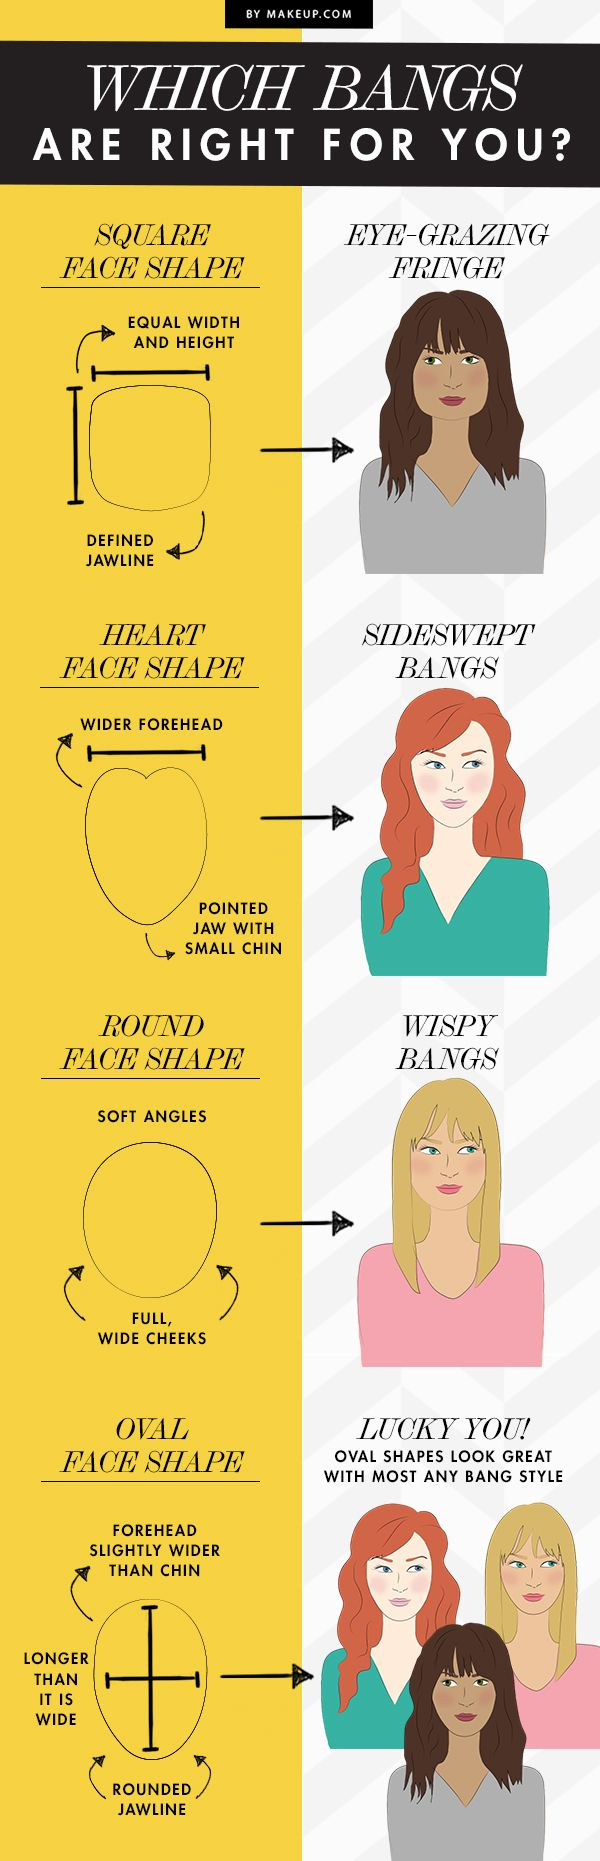 Good to know: which bangs are right for your face shape....